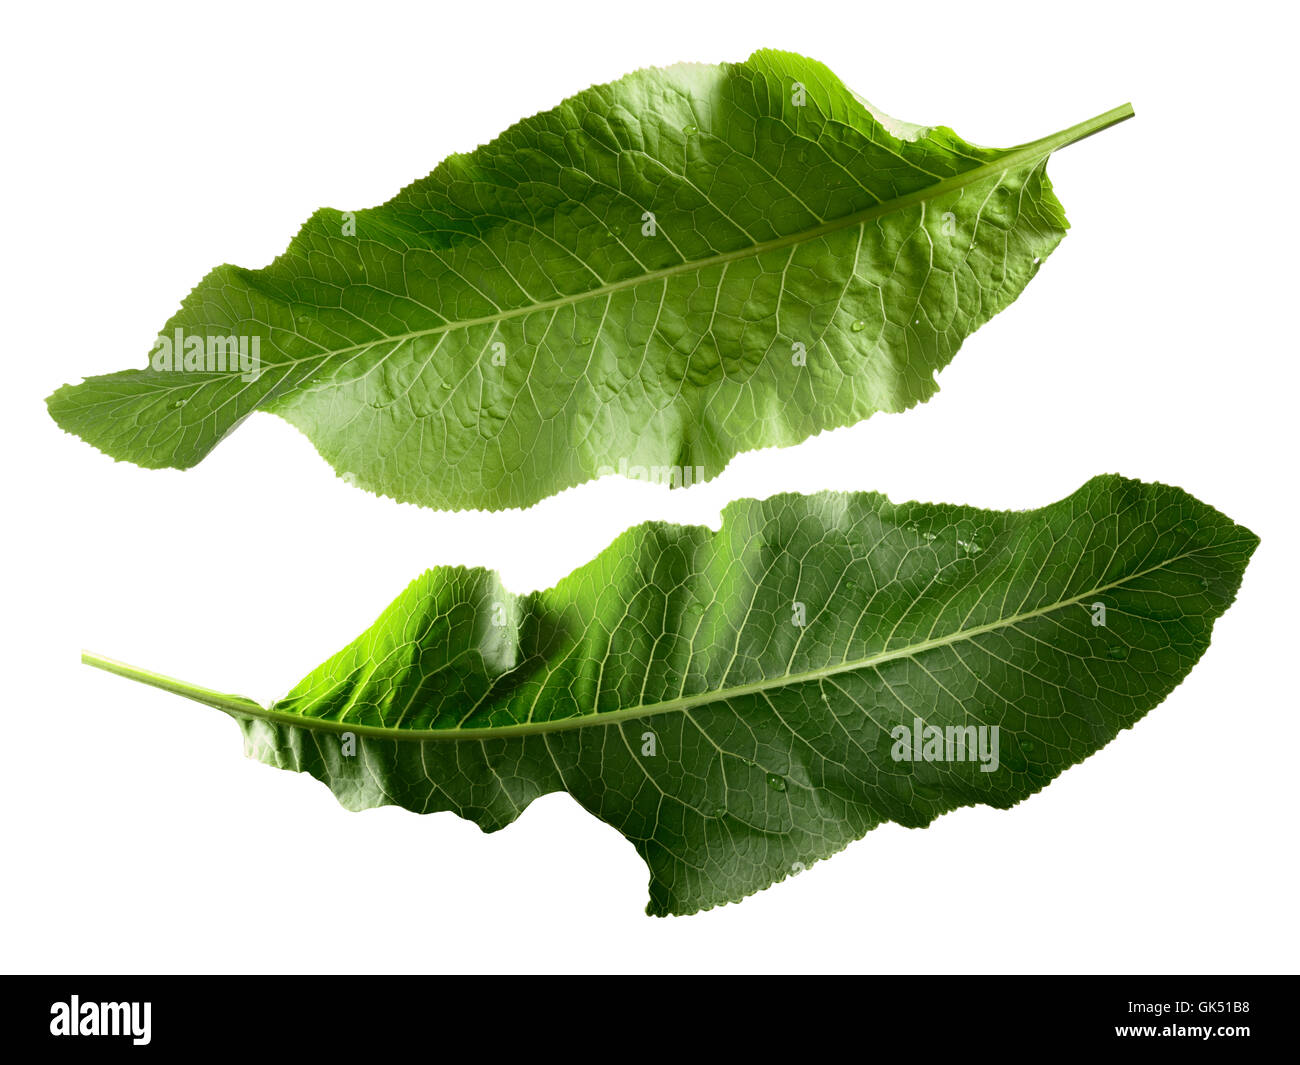 Two separate horseradish leaves. Clipping paths, infinite depth of field. Design elements - Stock Image